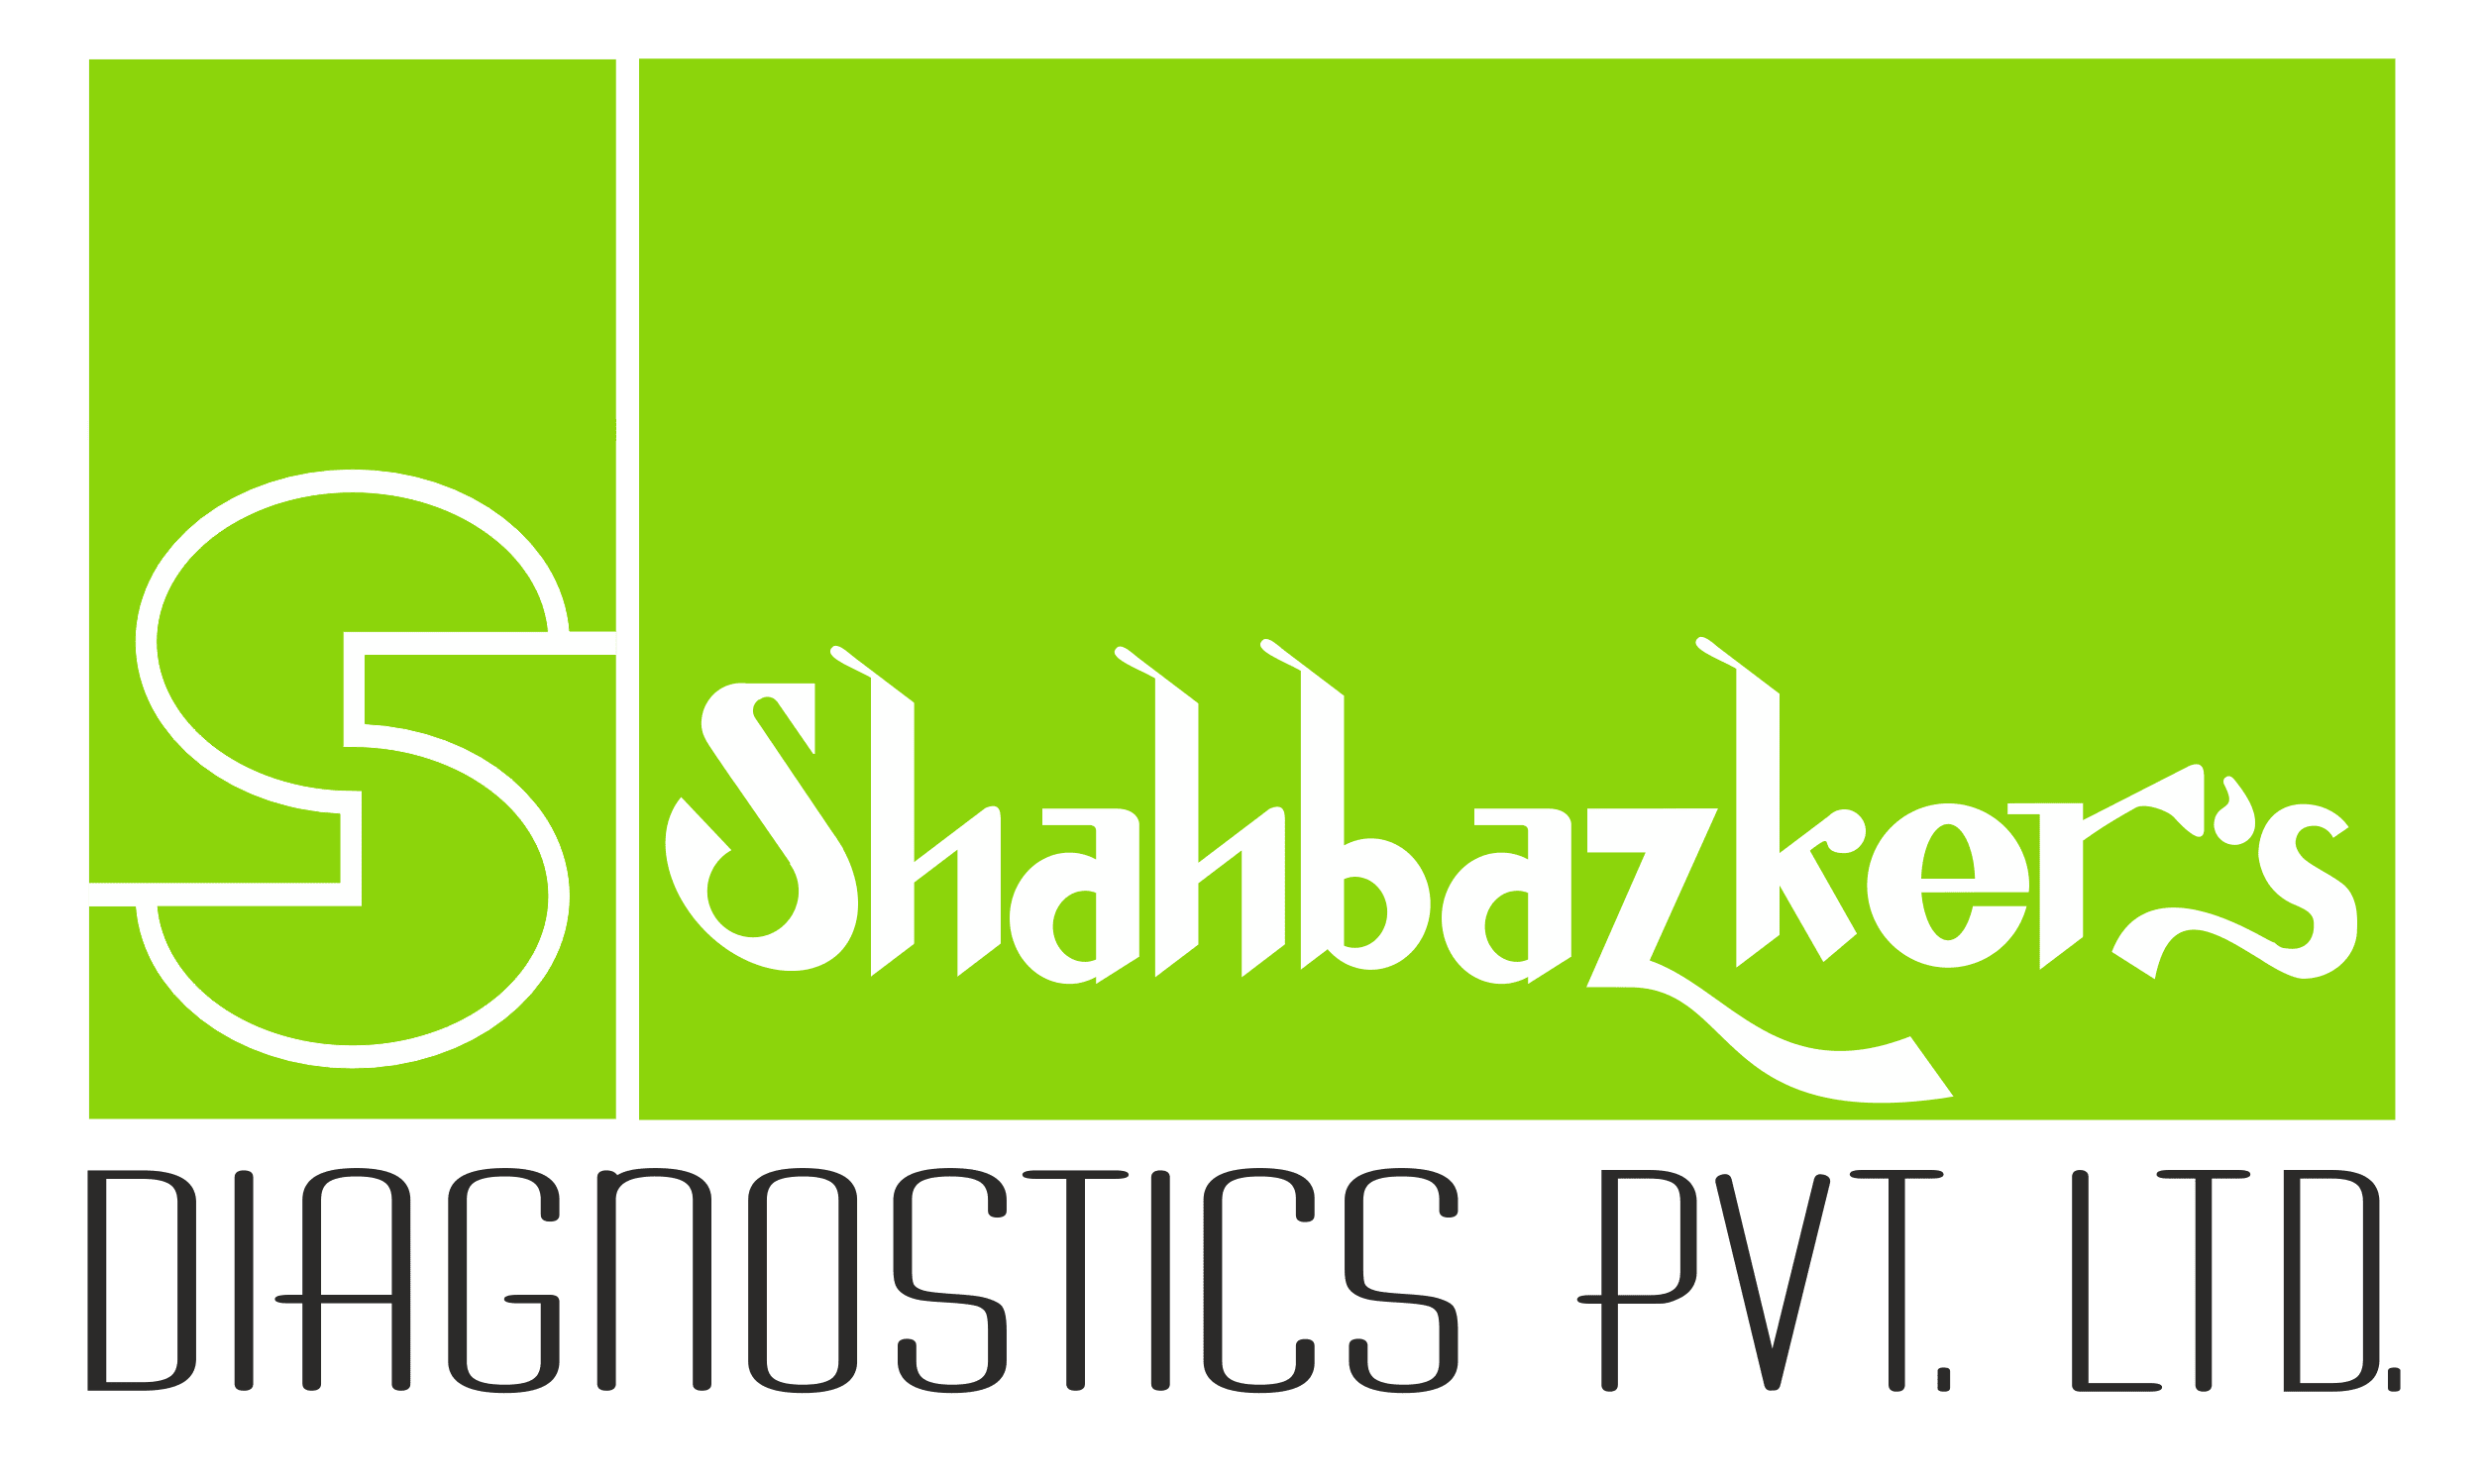 Shahbazker's Diagnostics Pvt Ltd